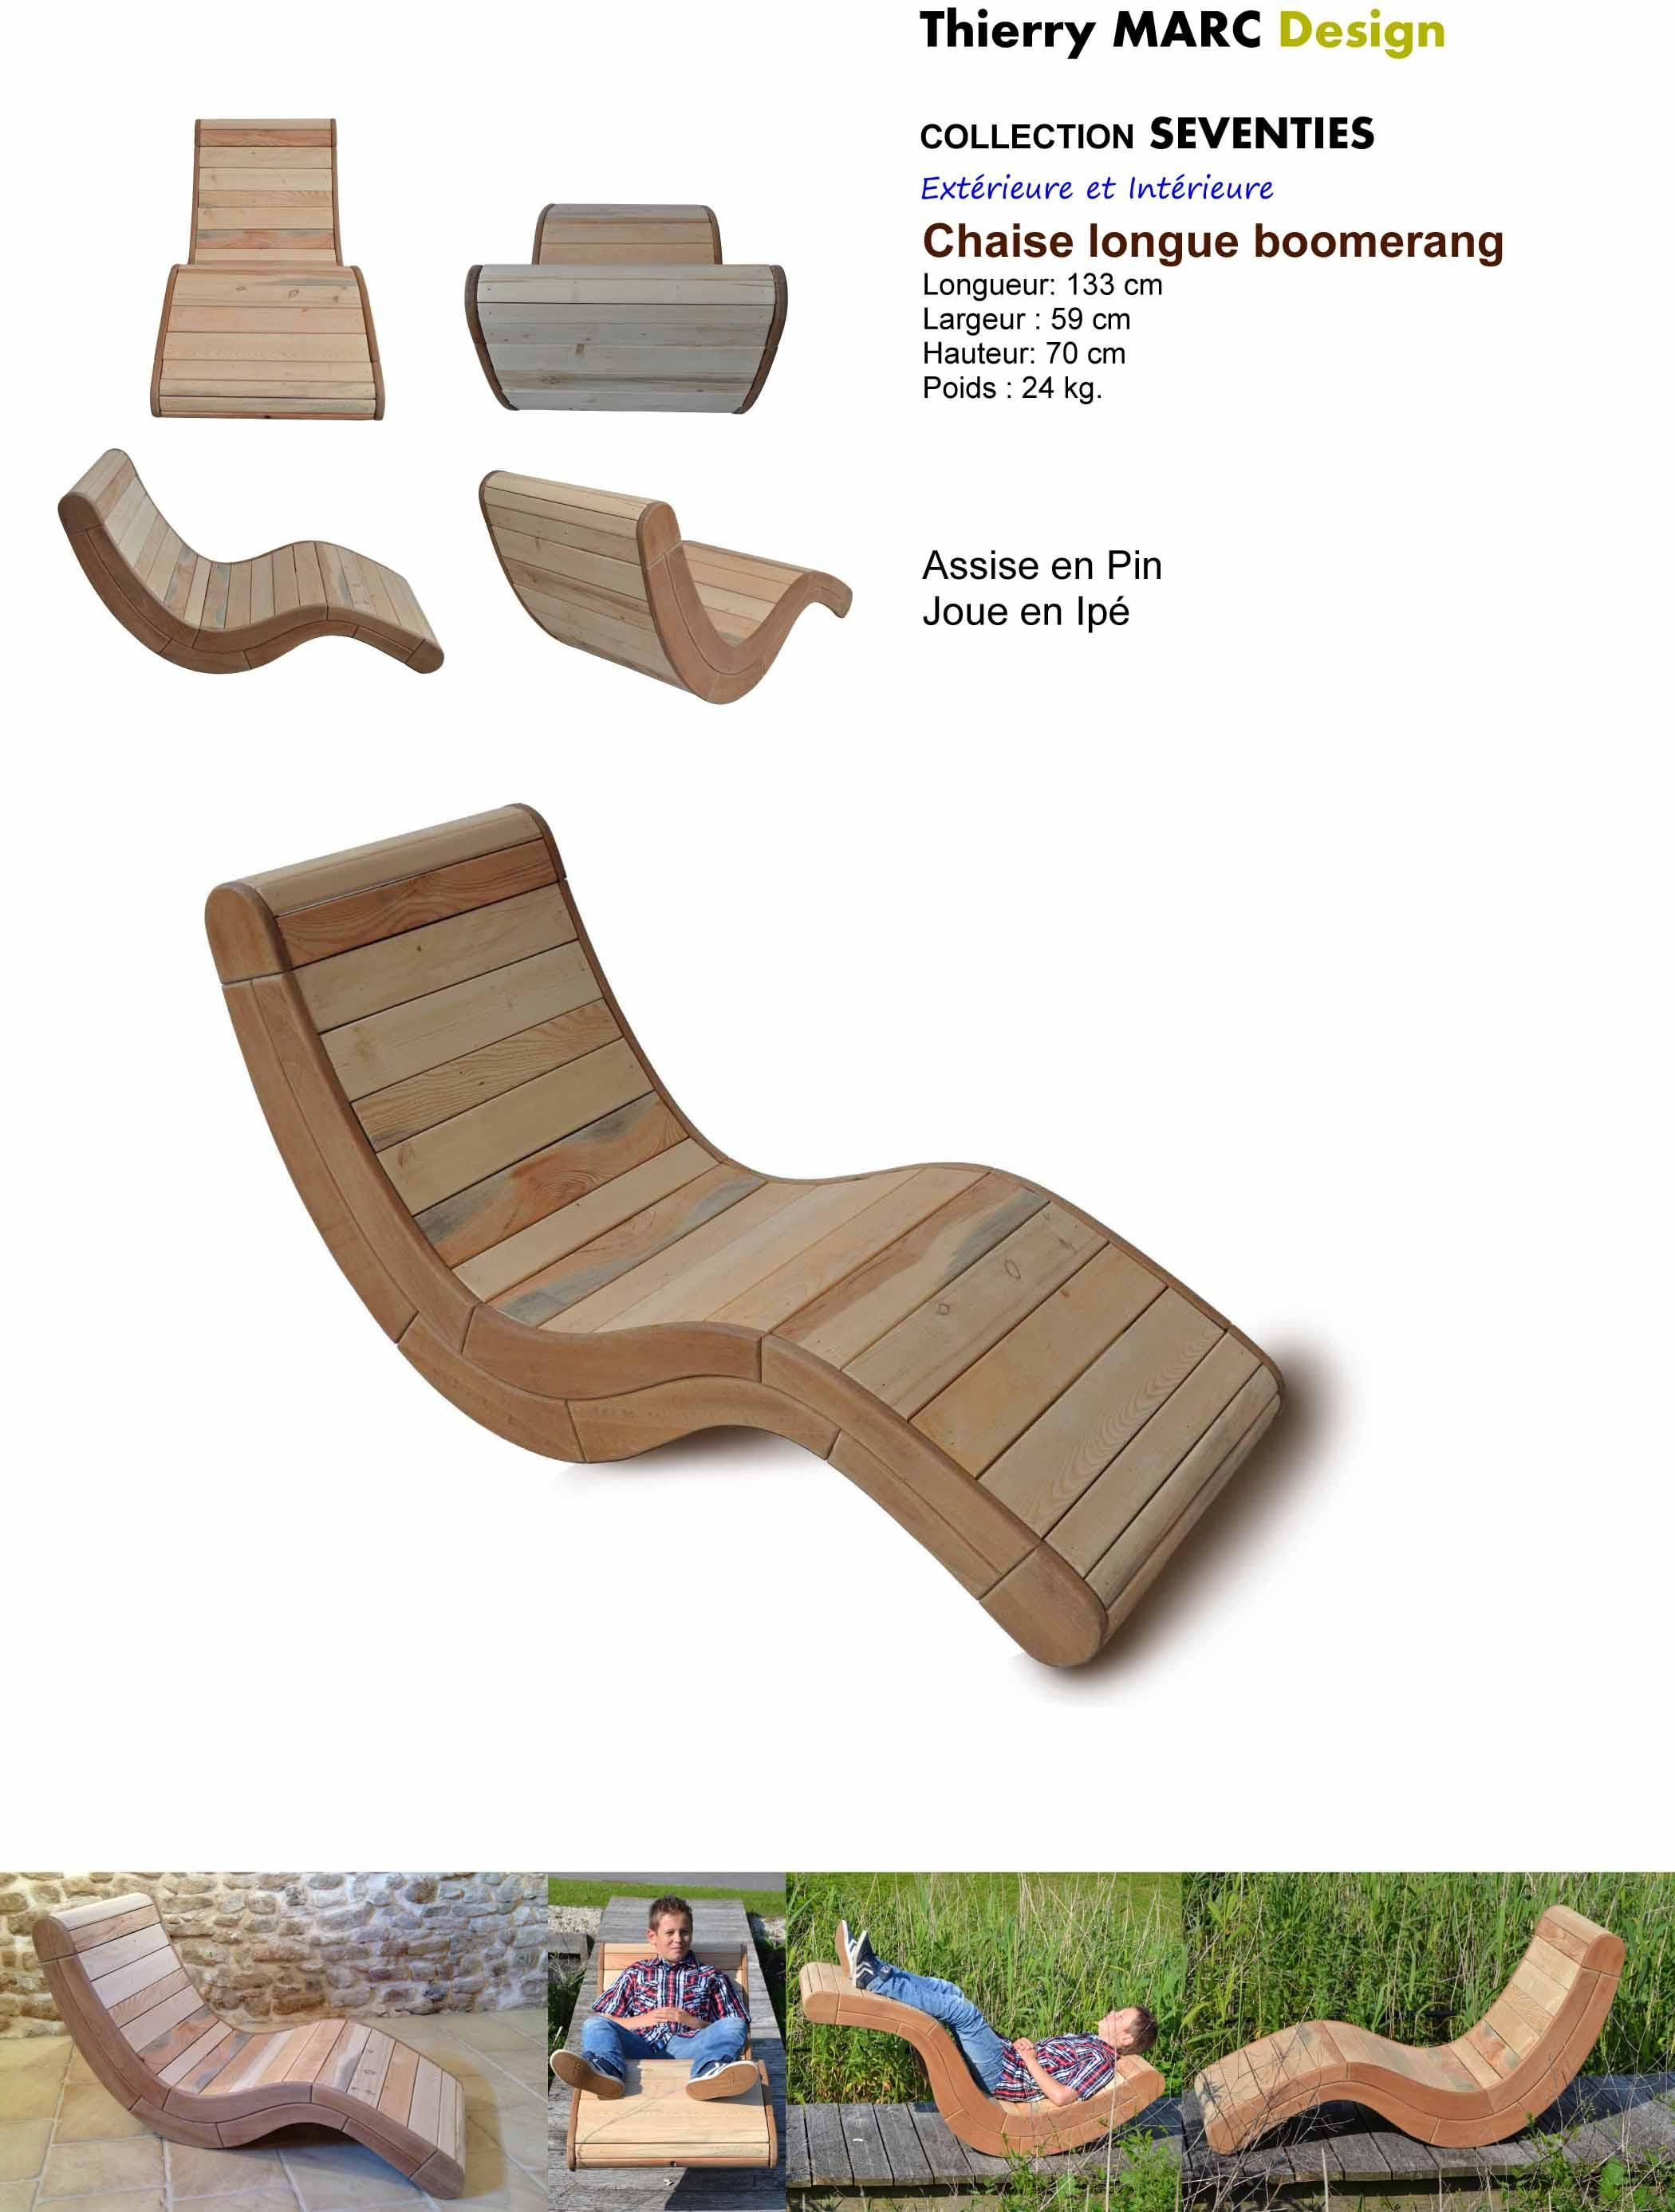 Chaise Salon De Jardin Vintage Chaise Longue Design Vintage Thierry Marc En Bois Diy